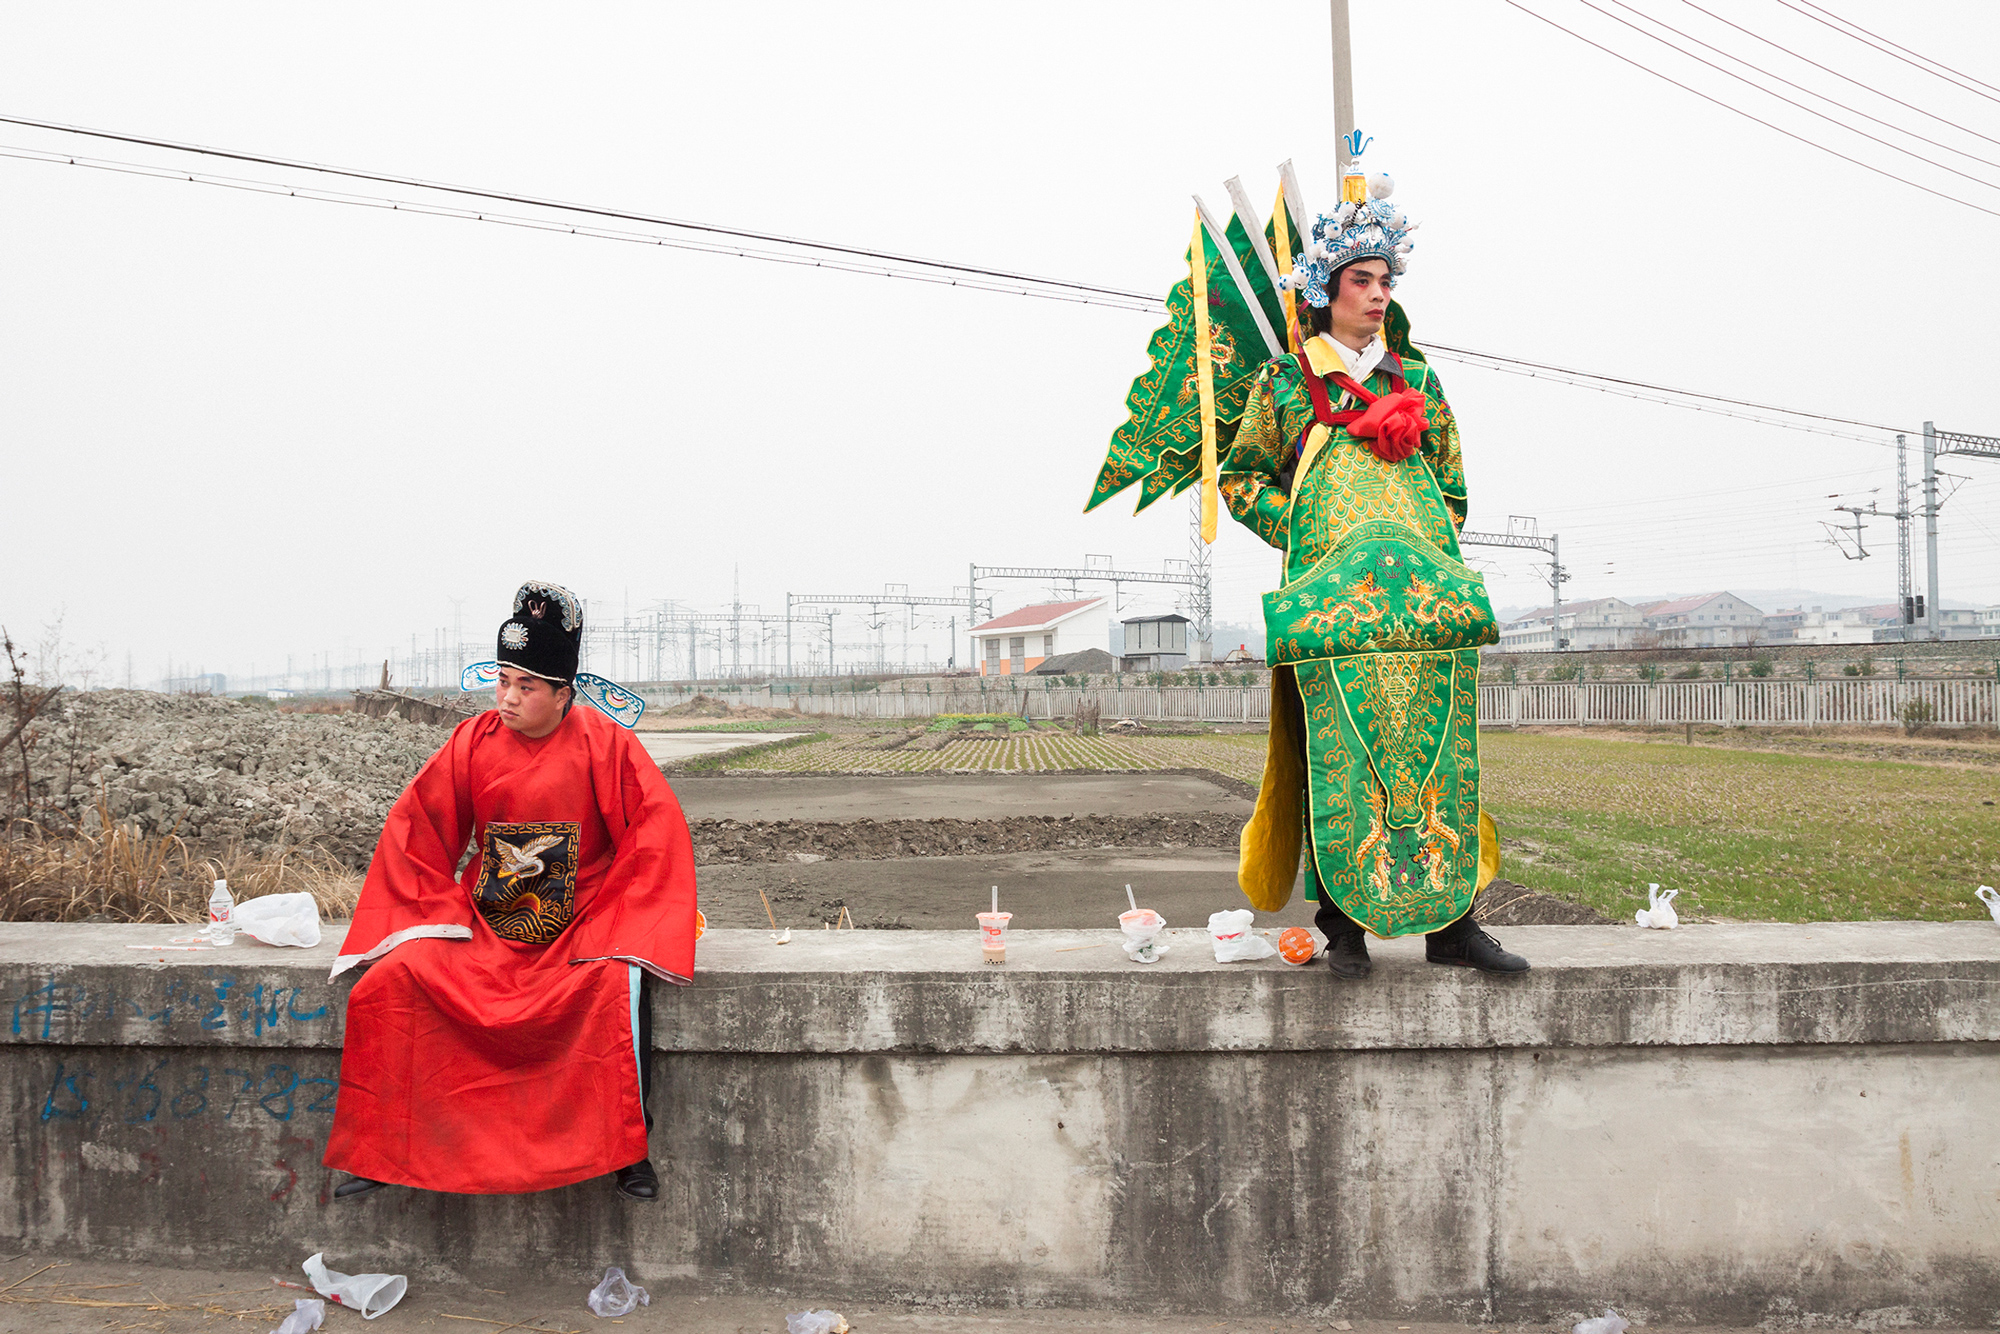 Costumed performers participate in a Spring Festival parade in Taoshan township, February 10, 2011.